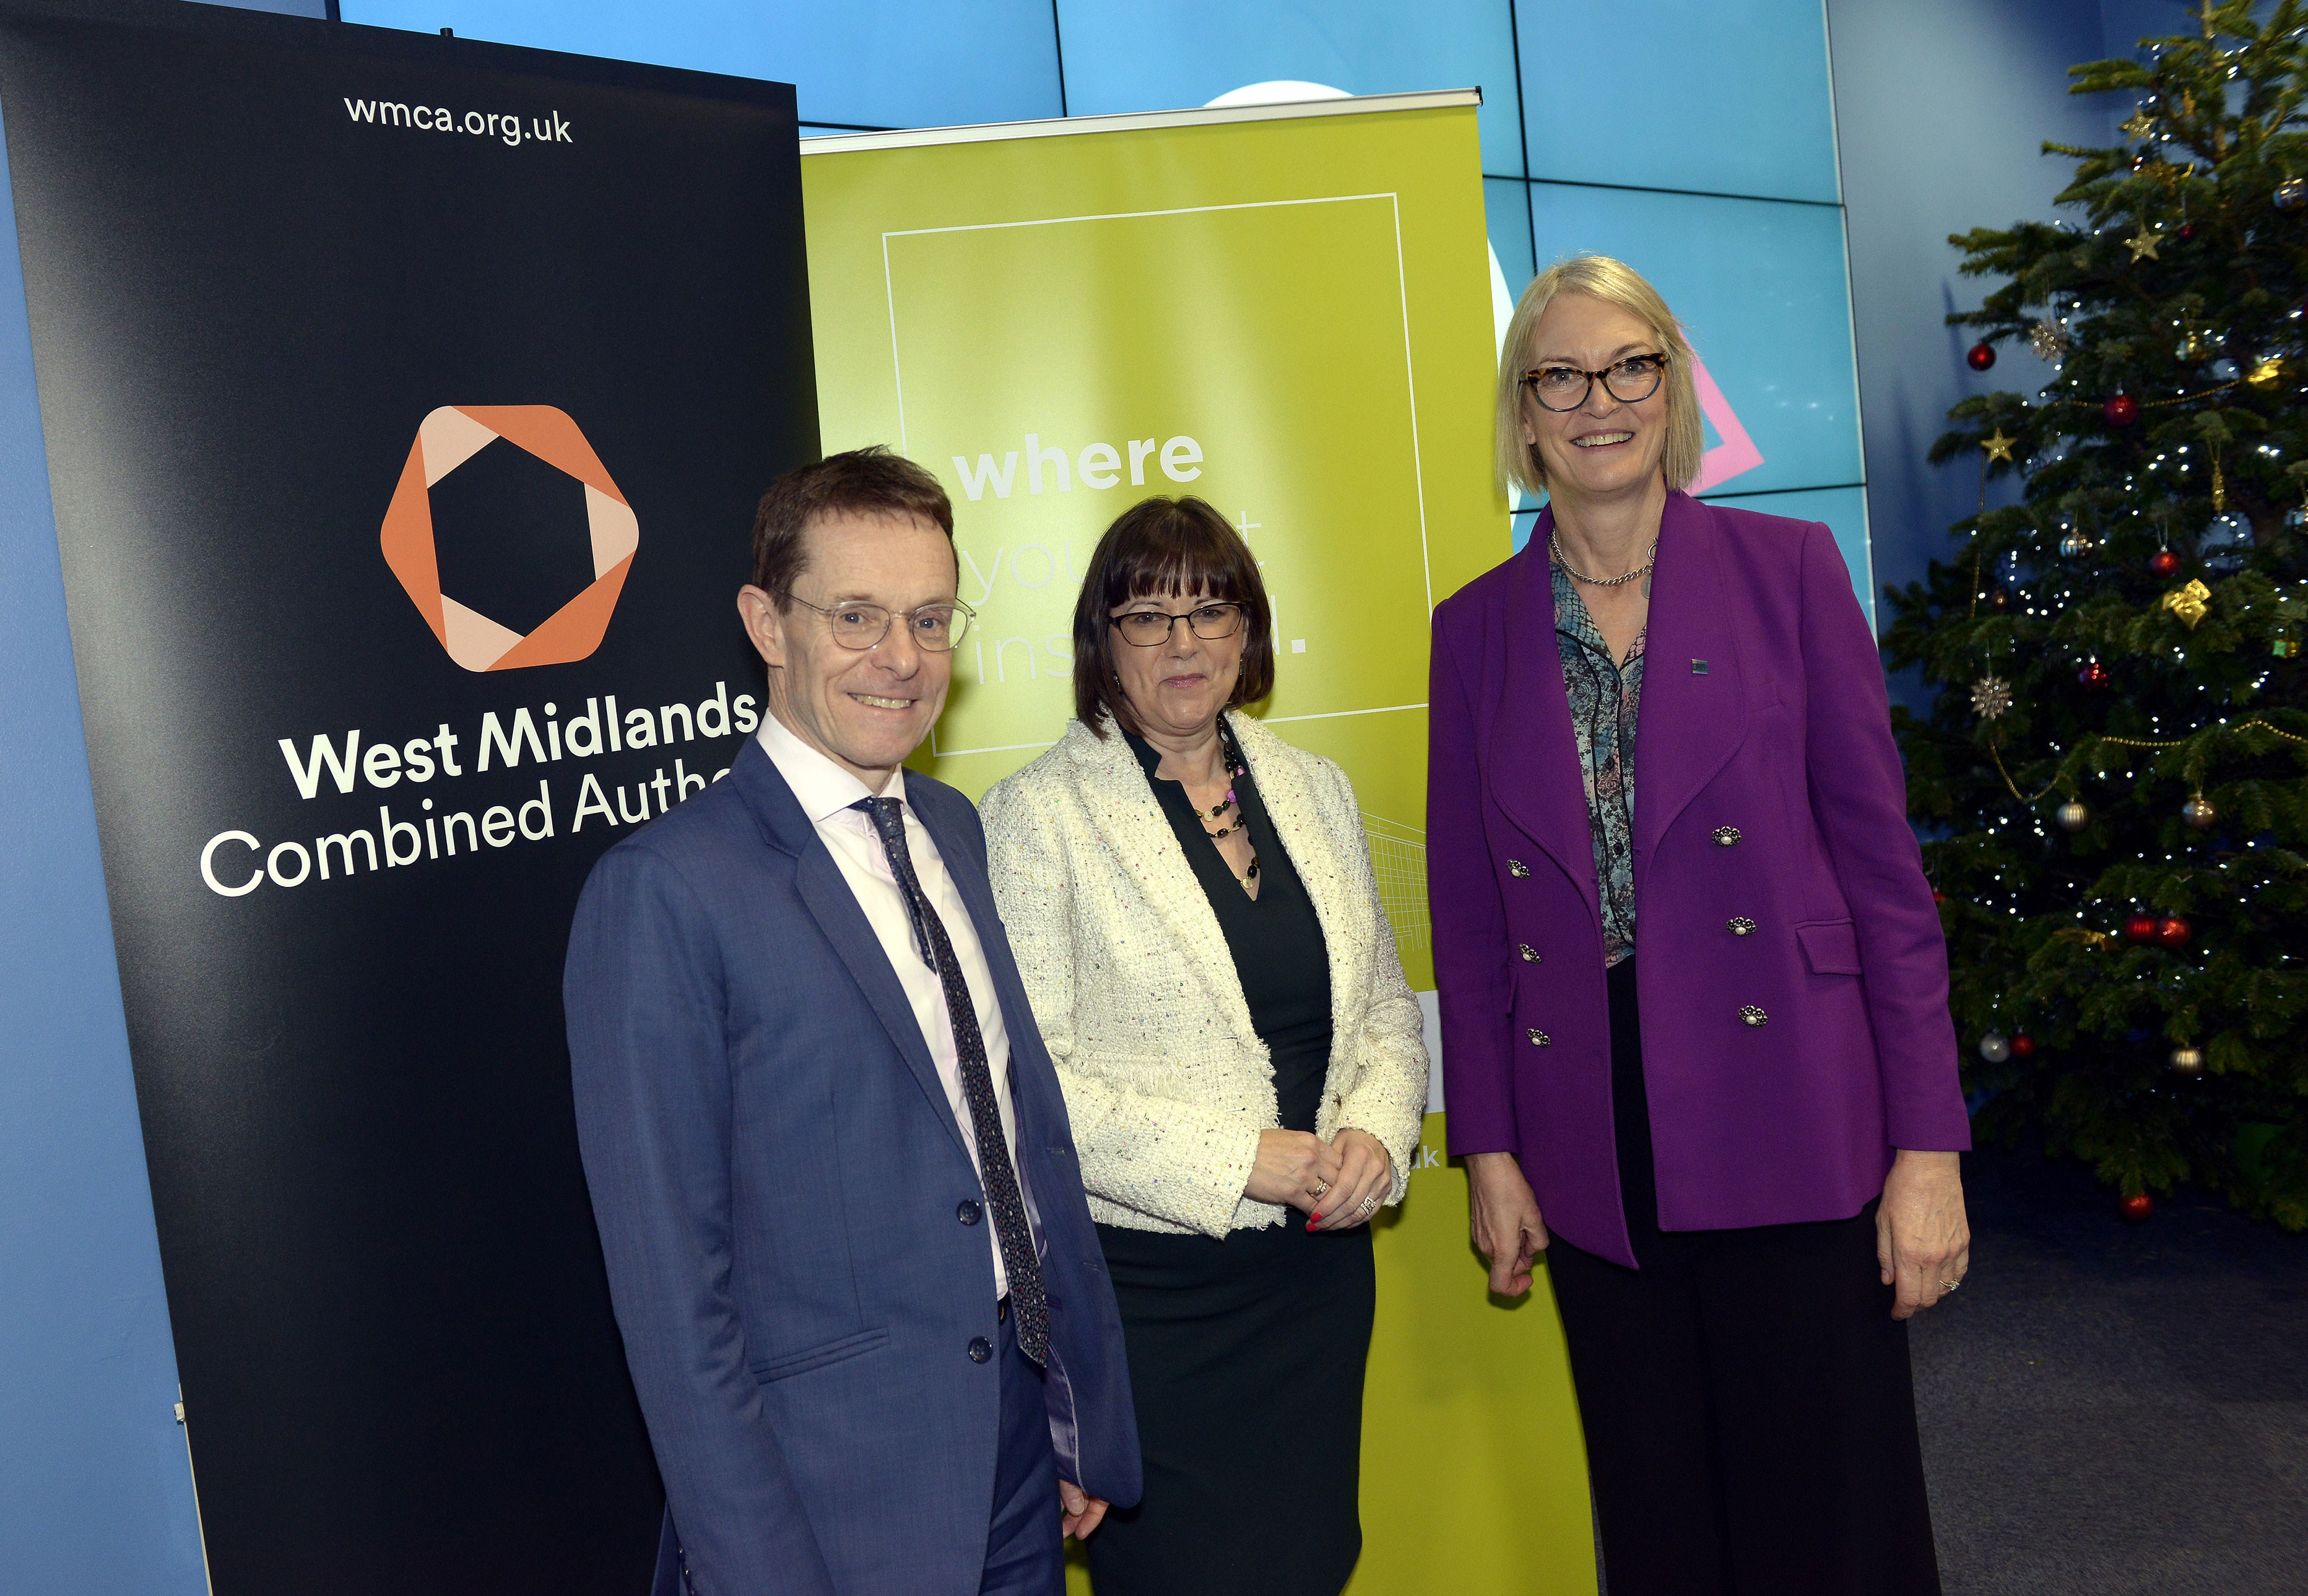 New digital partnership aims to level up West Midlands skills